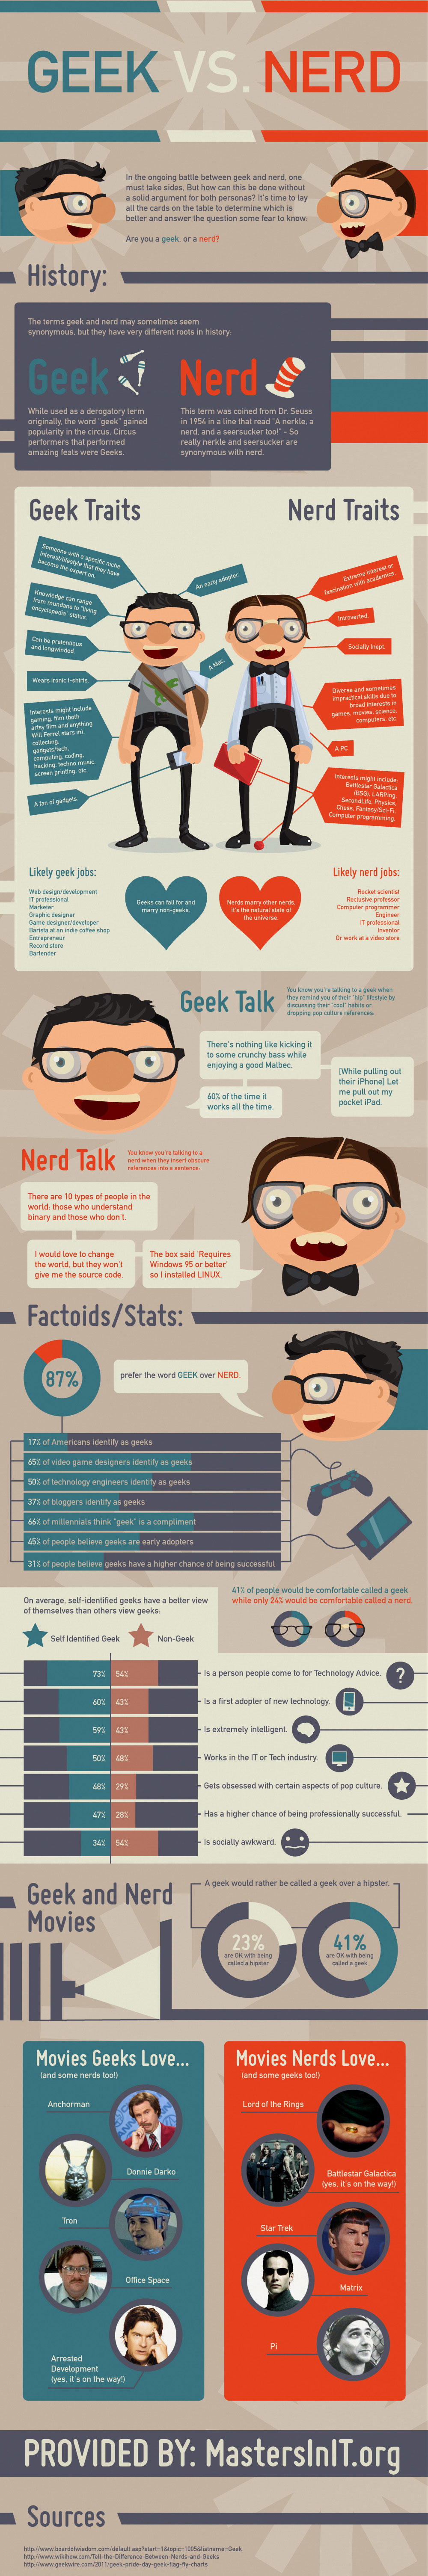 Understanding the Difference Between Geeks and Nerds [Infographic]